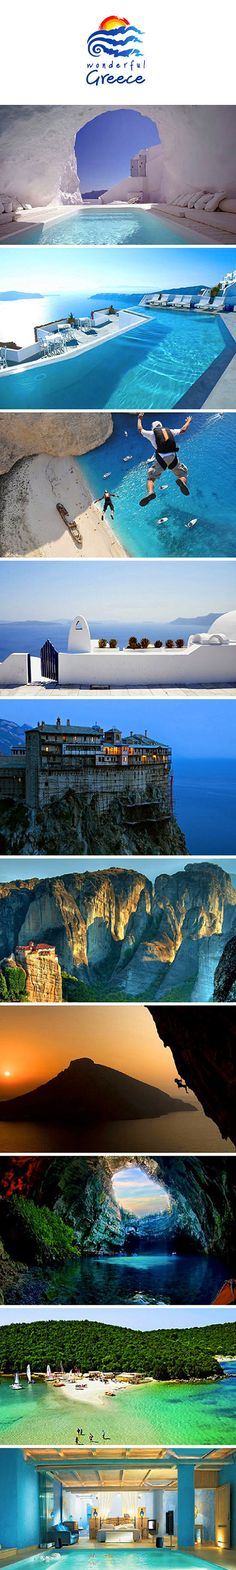 A few images that show why Greece should definitely be on your travel bucket list.